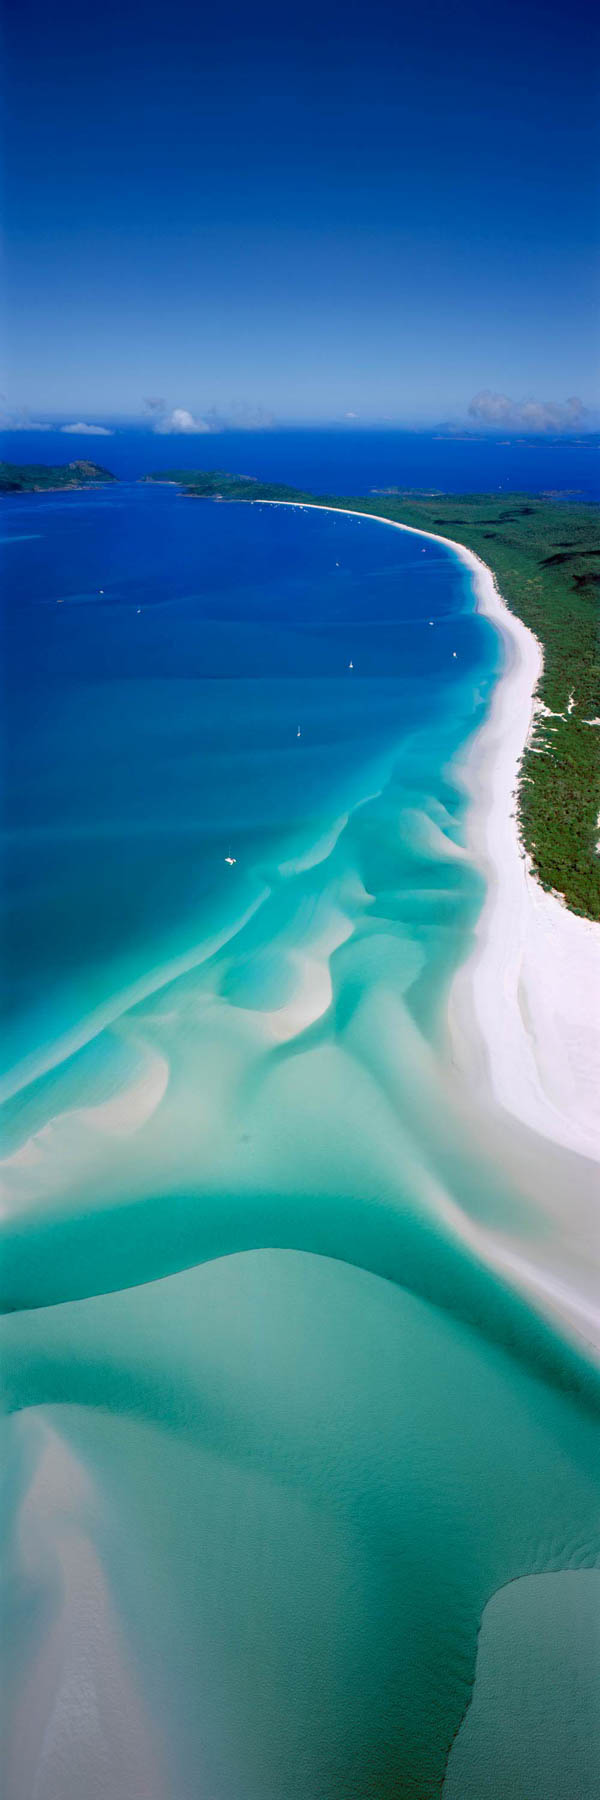 An aerial view of pure while sand swirling through turquoise water, Hill Inlet, Whitsundays, Qld, Australia.